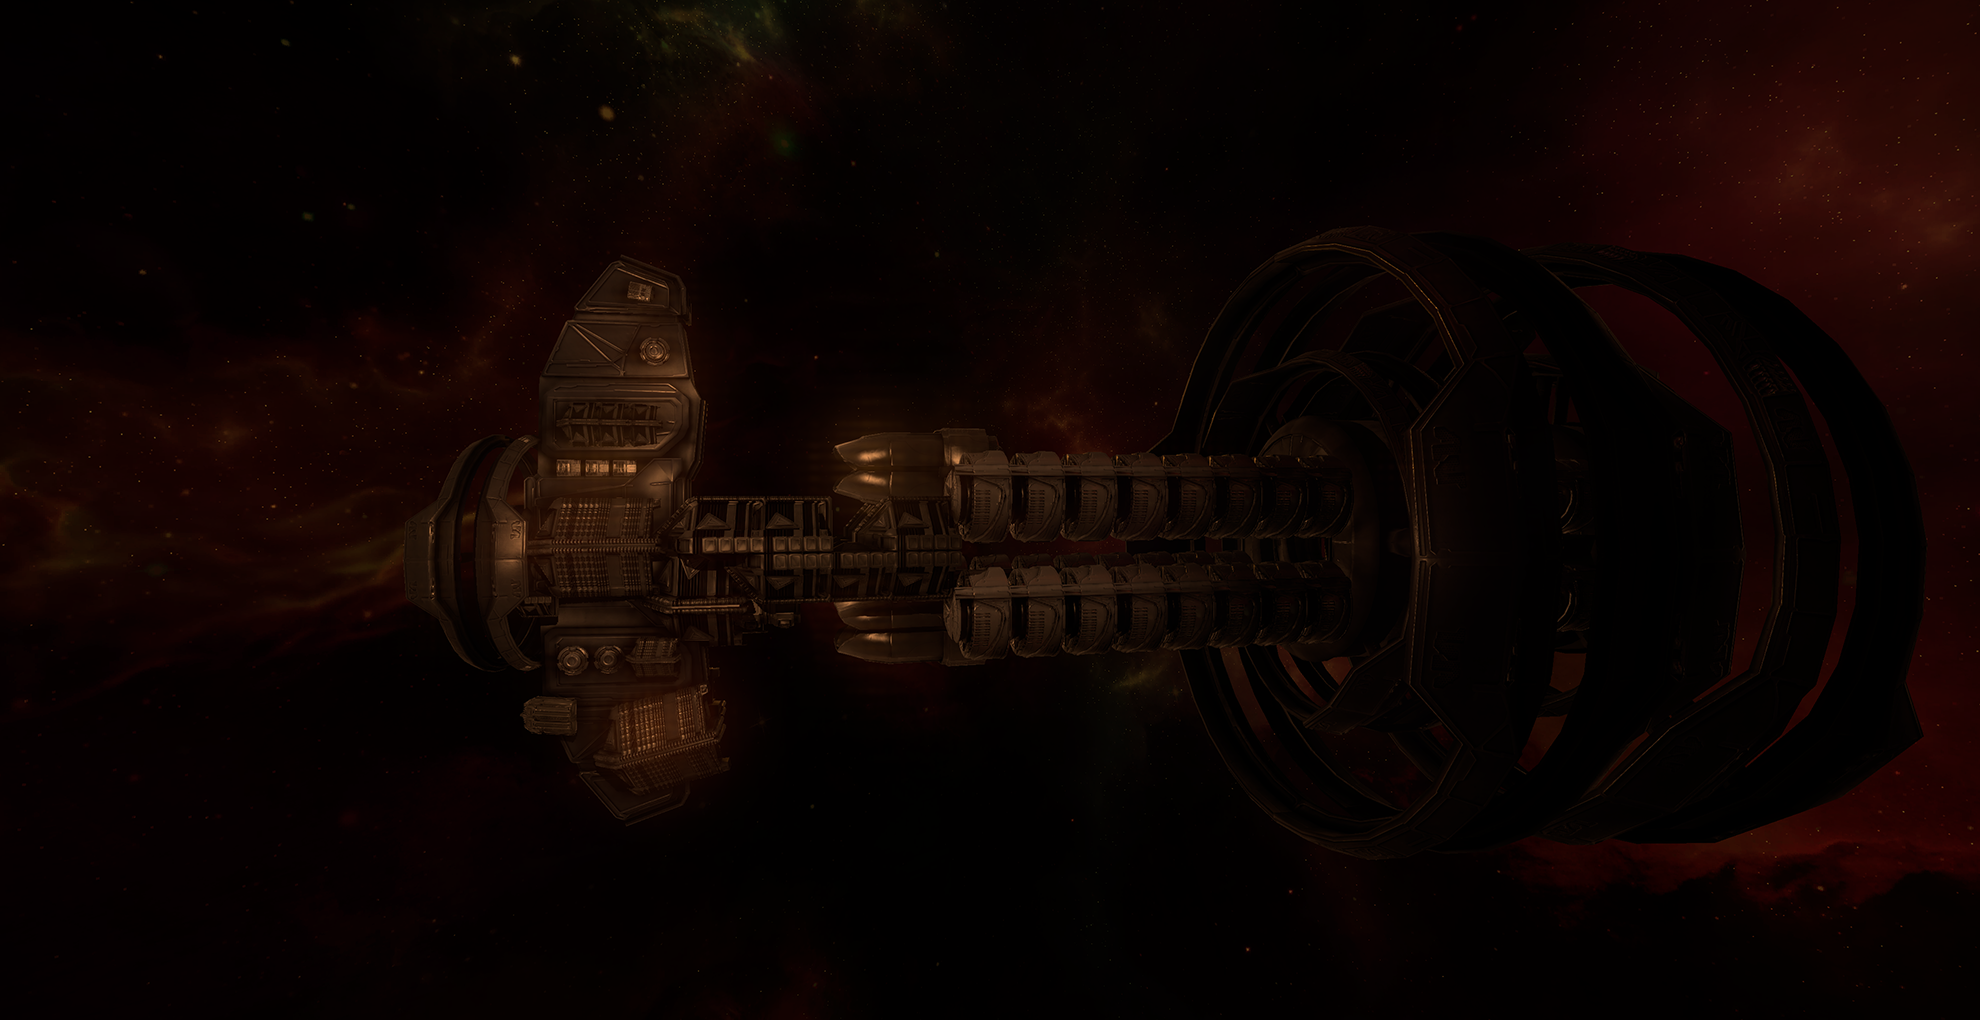 The Sevia(Deep Space Exporation Ship)